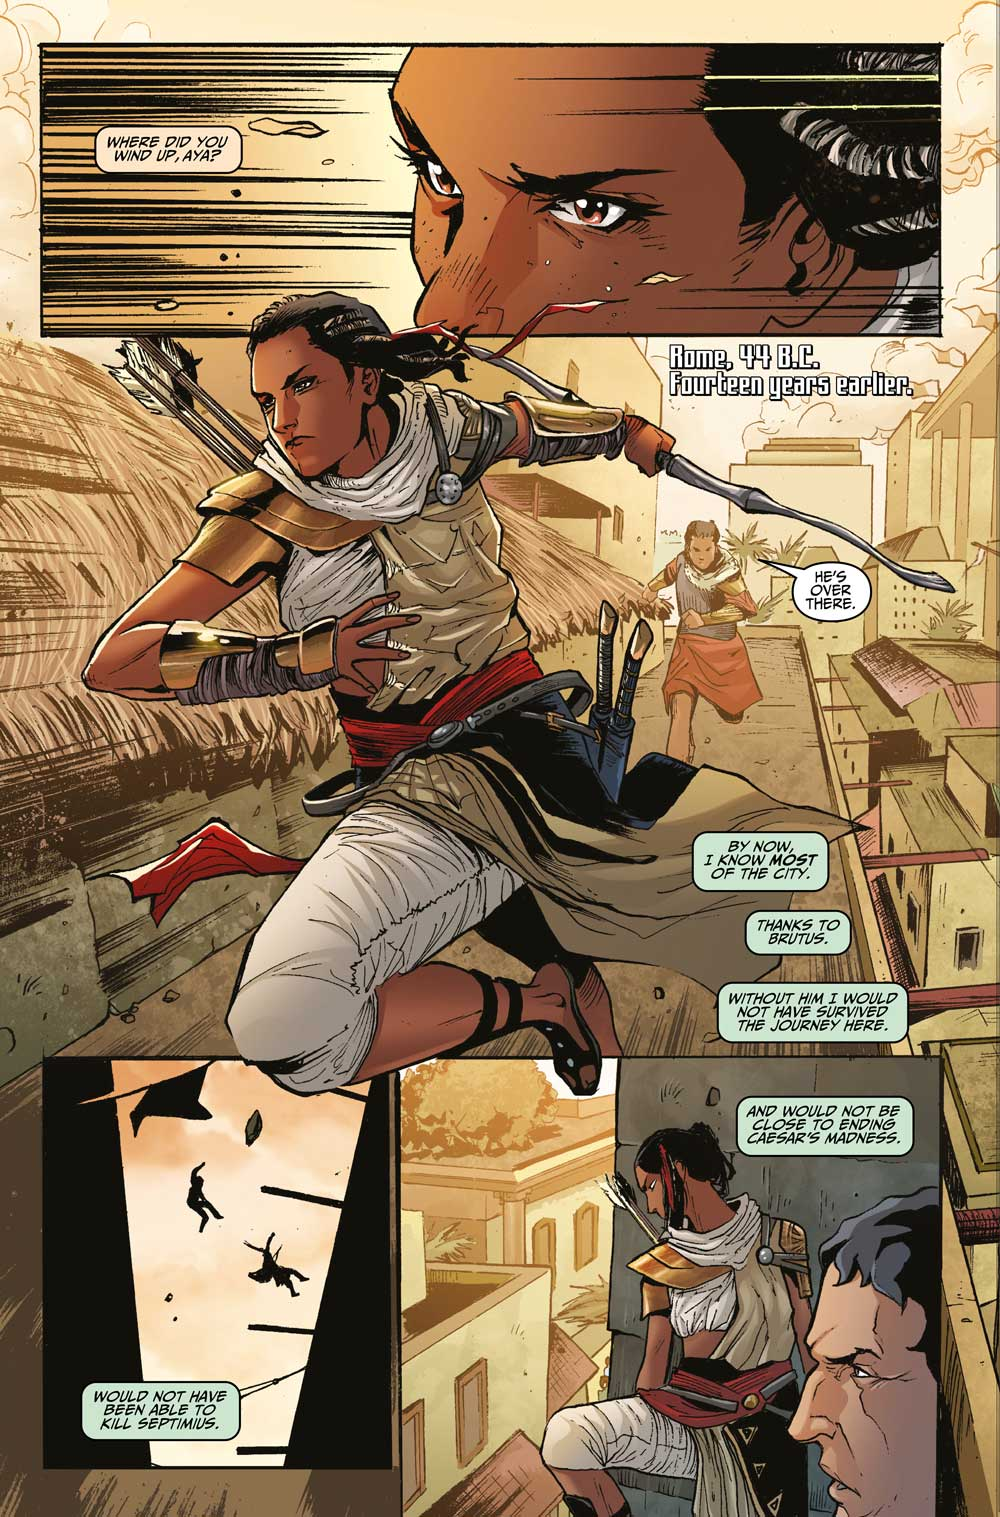 Assasscrons Creed Porno showing porn images for assassins creed comics porn   www